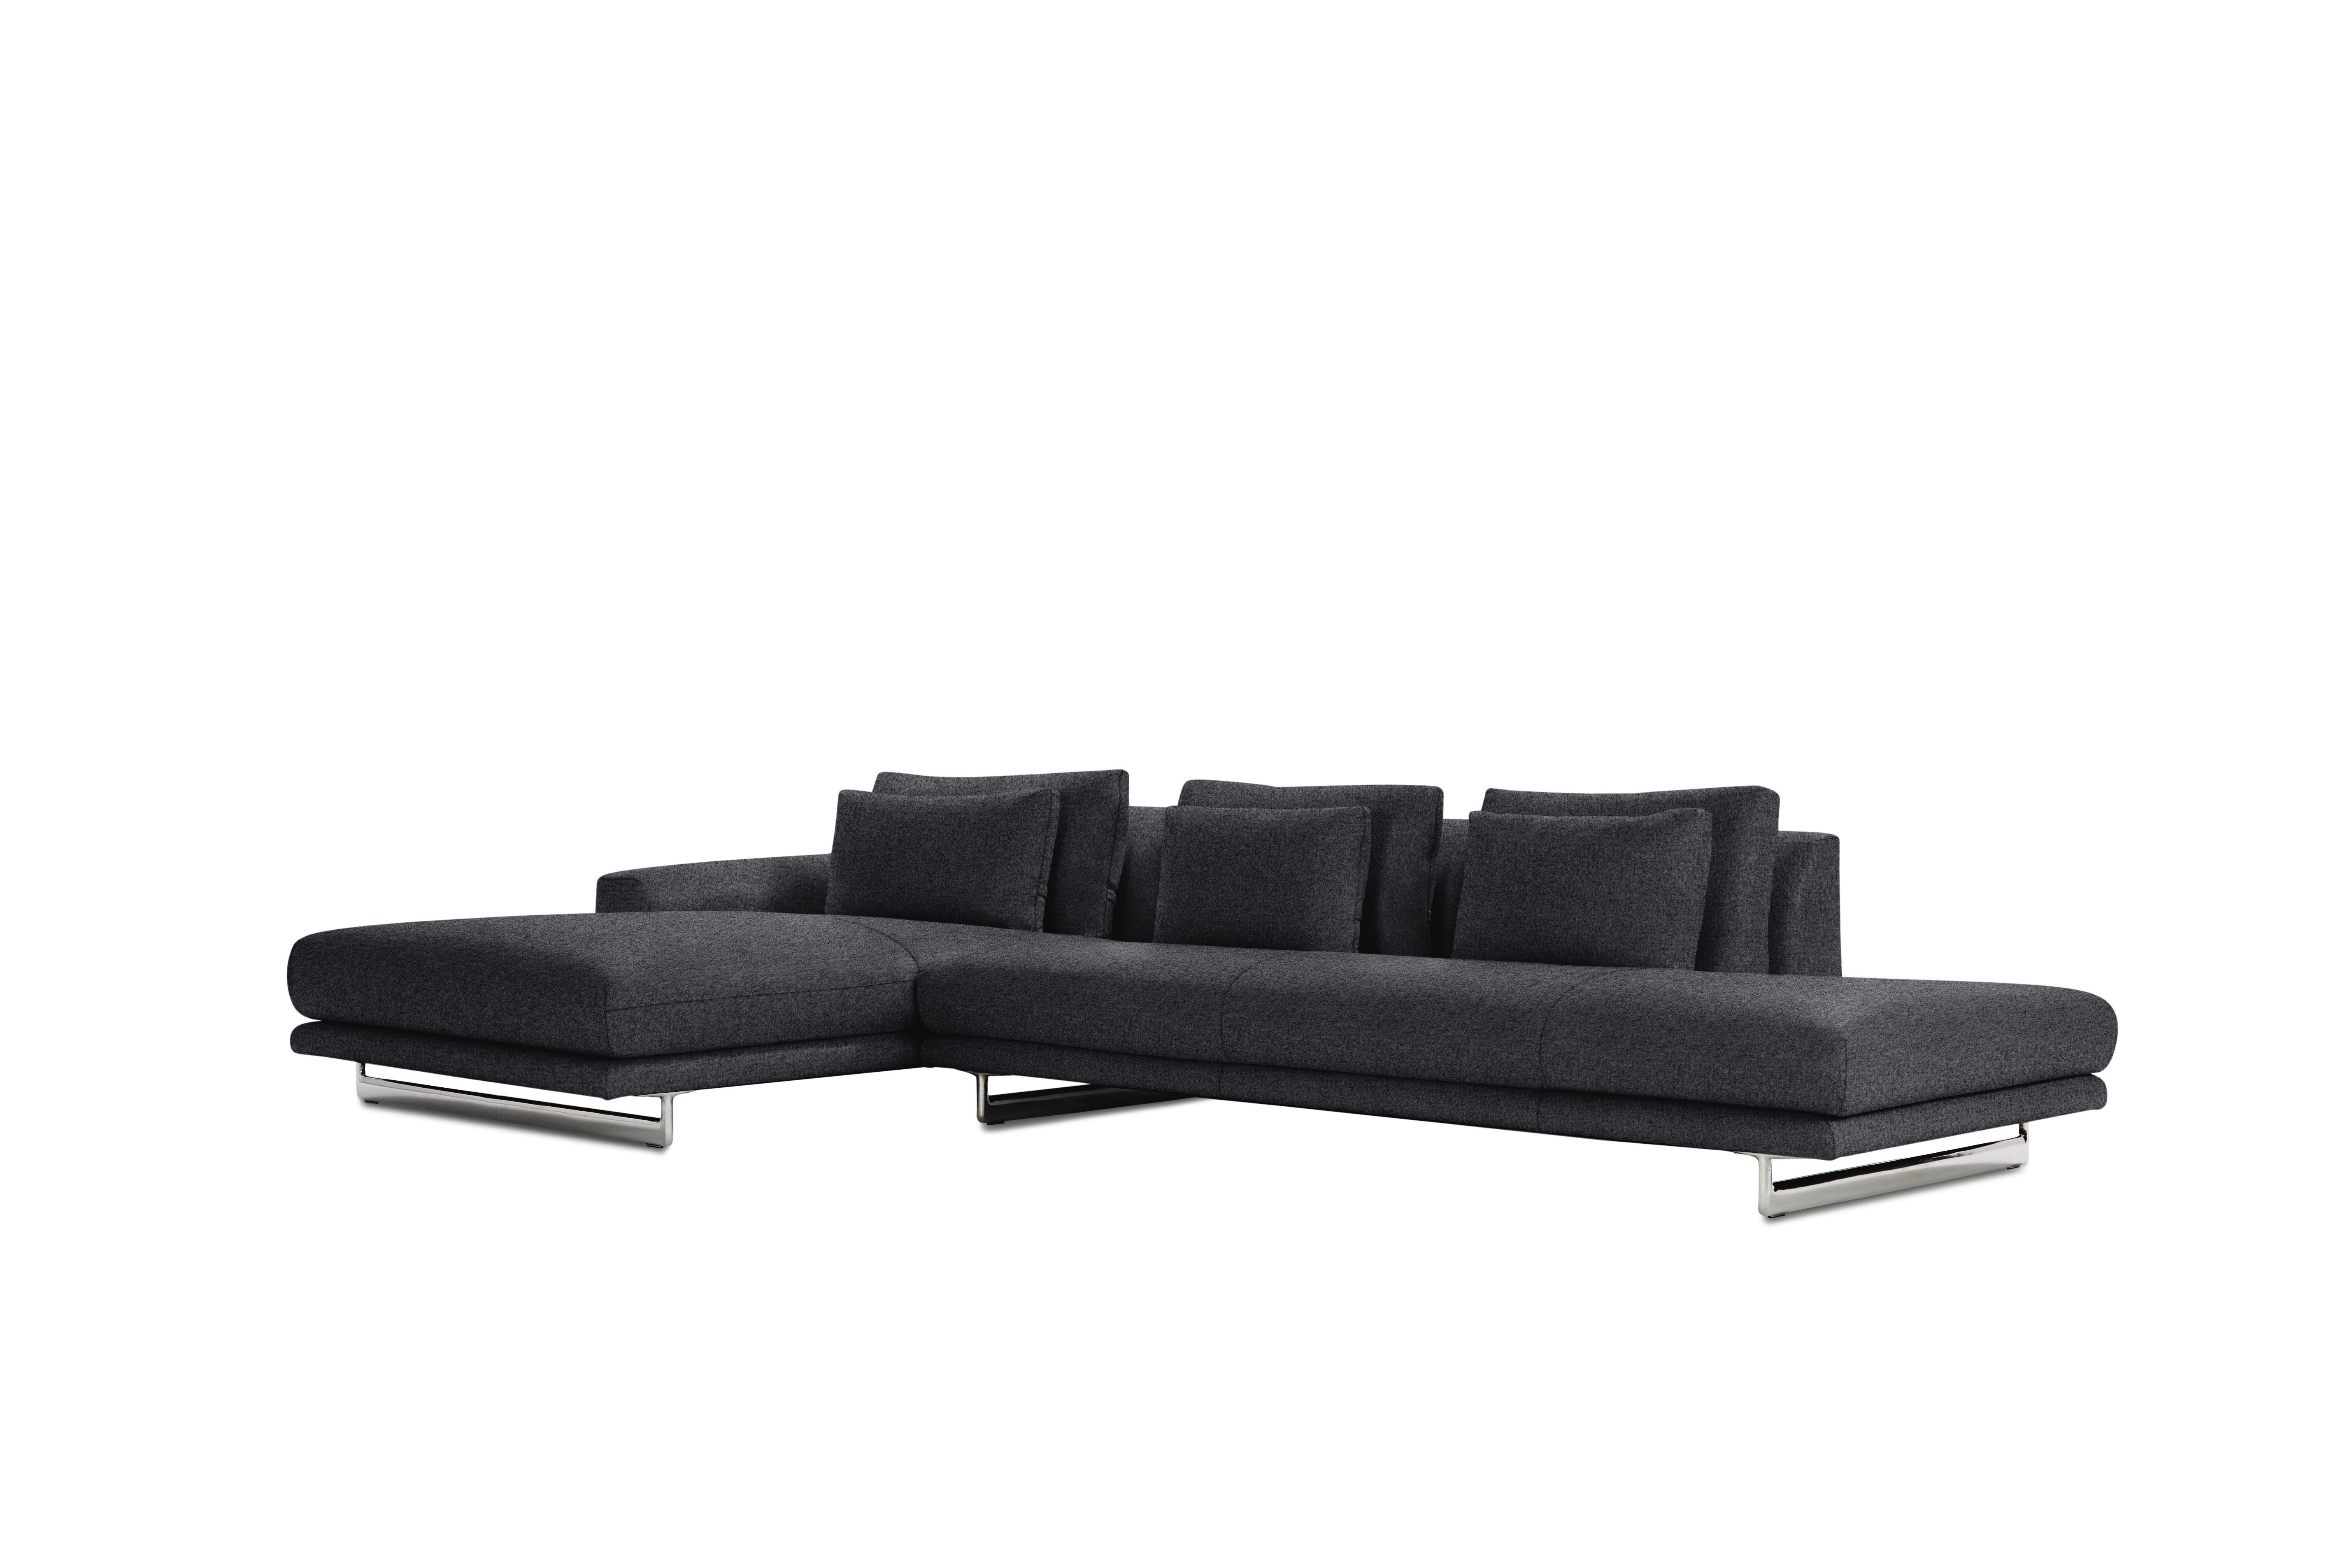 Lecco Sectional, Black by Design Within Reach